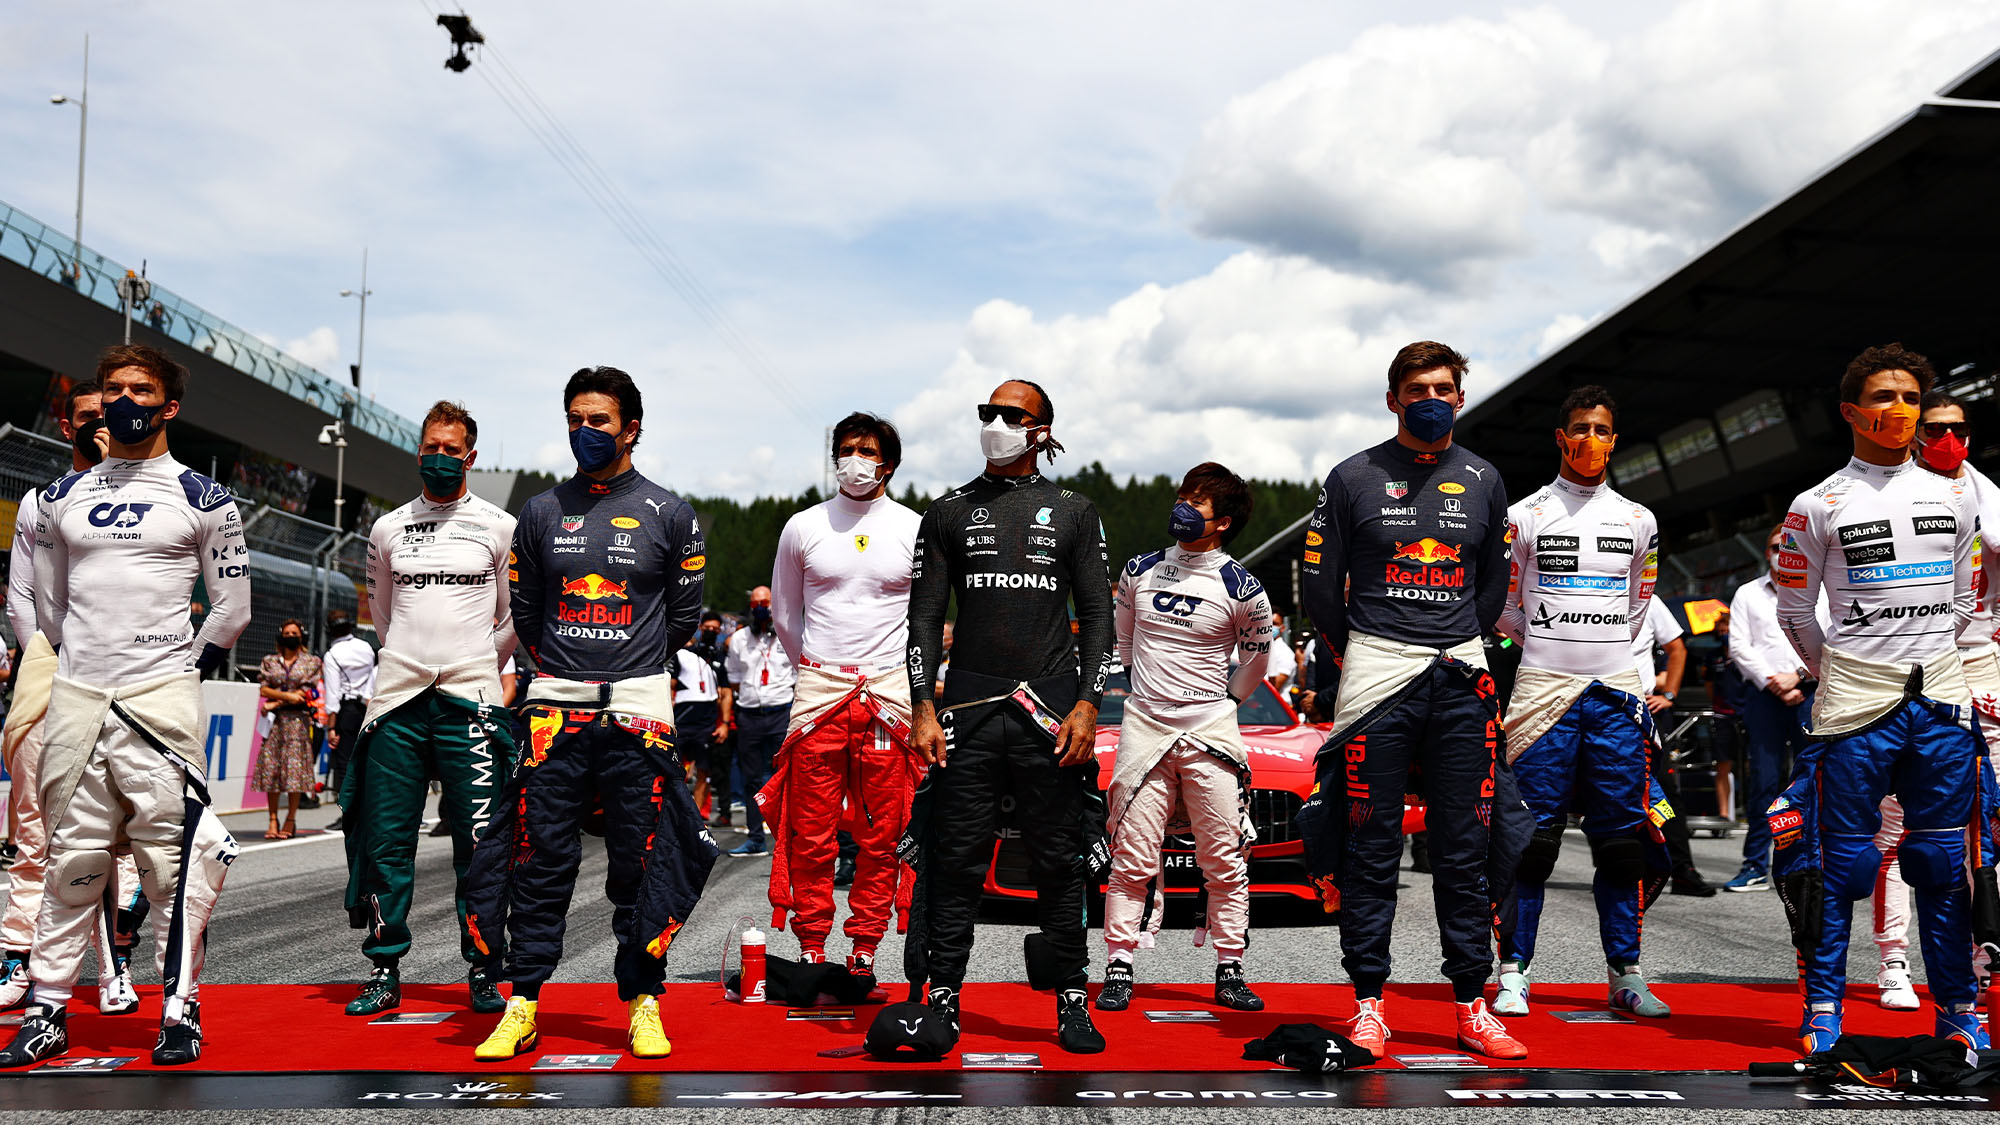 SPIELBERG, AUSTRIA - JUNE 27: Pierre Gasly of France and Scuderia AlphaTauri, Sebastian Vettel of Germany and Aston Martin F1 Team, Sergio Perez of Mexico and Red Bull Racing, Carlos Sainz of Spain and Ferrari, Yuki Tsunoda of Japan and Scuderia AlphaTauri, Lewis Hamilton of Great Britain and Mercedes GP, Max Verstappen of Netherlands and Red Bull Racing, Daniel Ricciardo of Australia and McLaren F1 and Lando Norris of Great Britain and McLaren F1 stand for the national anthem on the grid ahead of the F1 Grand Prix of Styria at Red Bull Ring on June 27, 2021 in Spielberg, Austria. (Photo by Dan Istitene - Formula 1/Formula 1 via Getty Images)